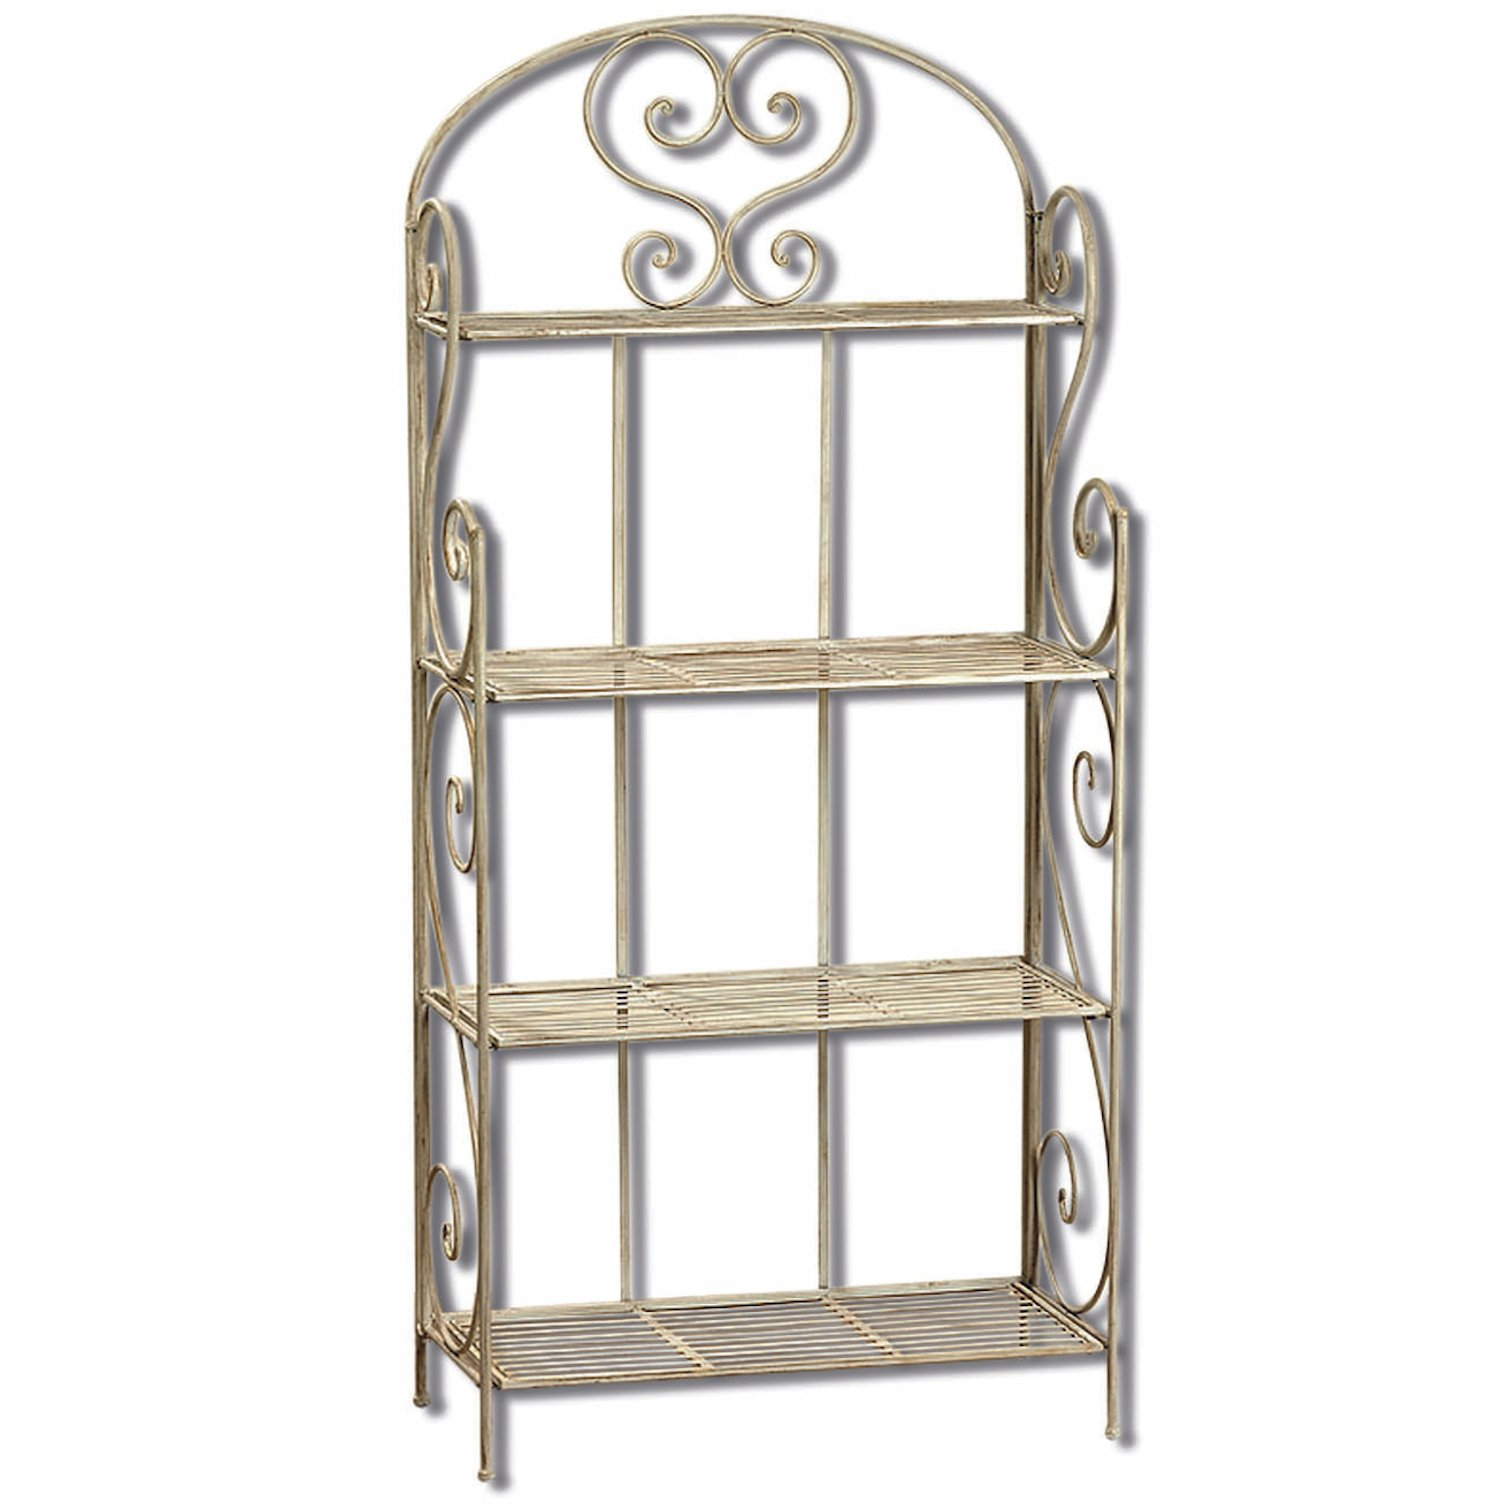 The Farmer's Market Bakers Rack, Rustic White, Distressed Vintage Reclaimed Style, Wrought Iron, For Indoor and Outdoor Use, Over 5 Ft, 63 Inches Tall, By Whole House Worlds by Whole House Worlds